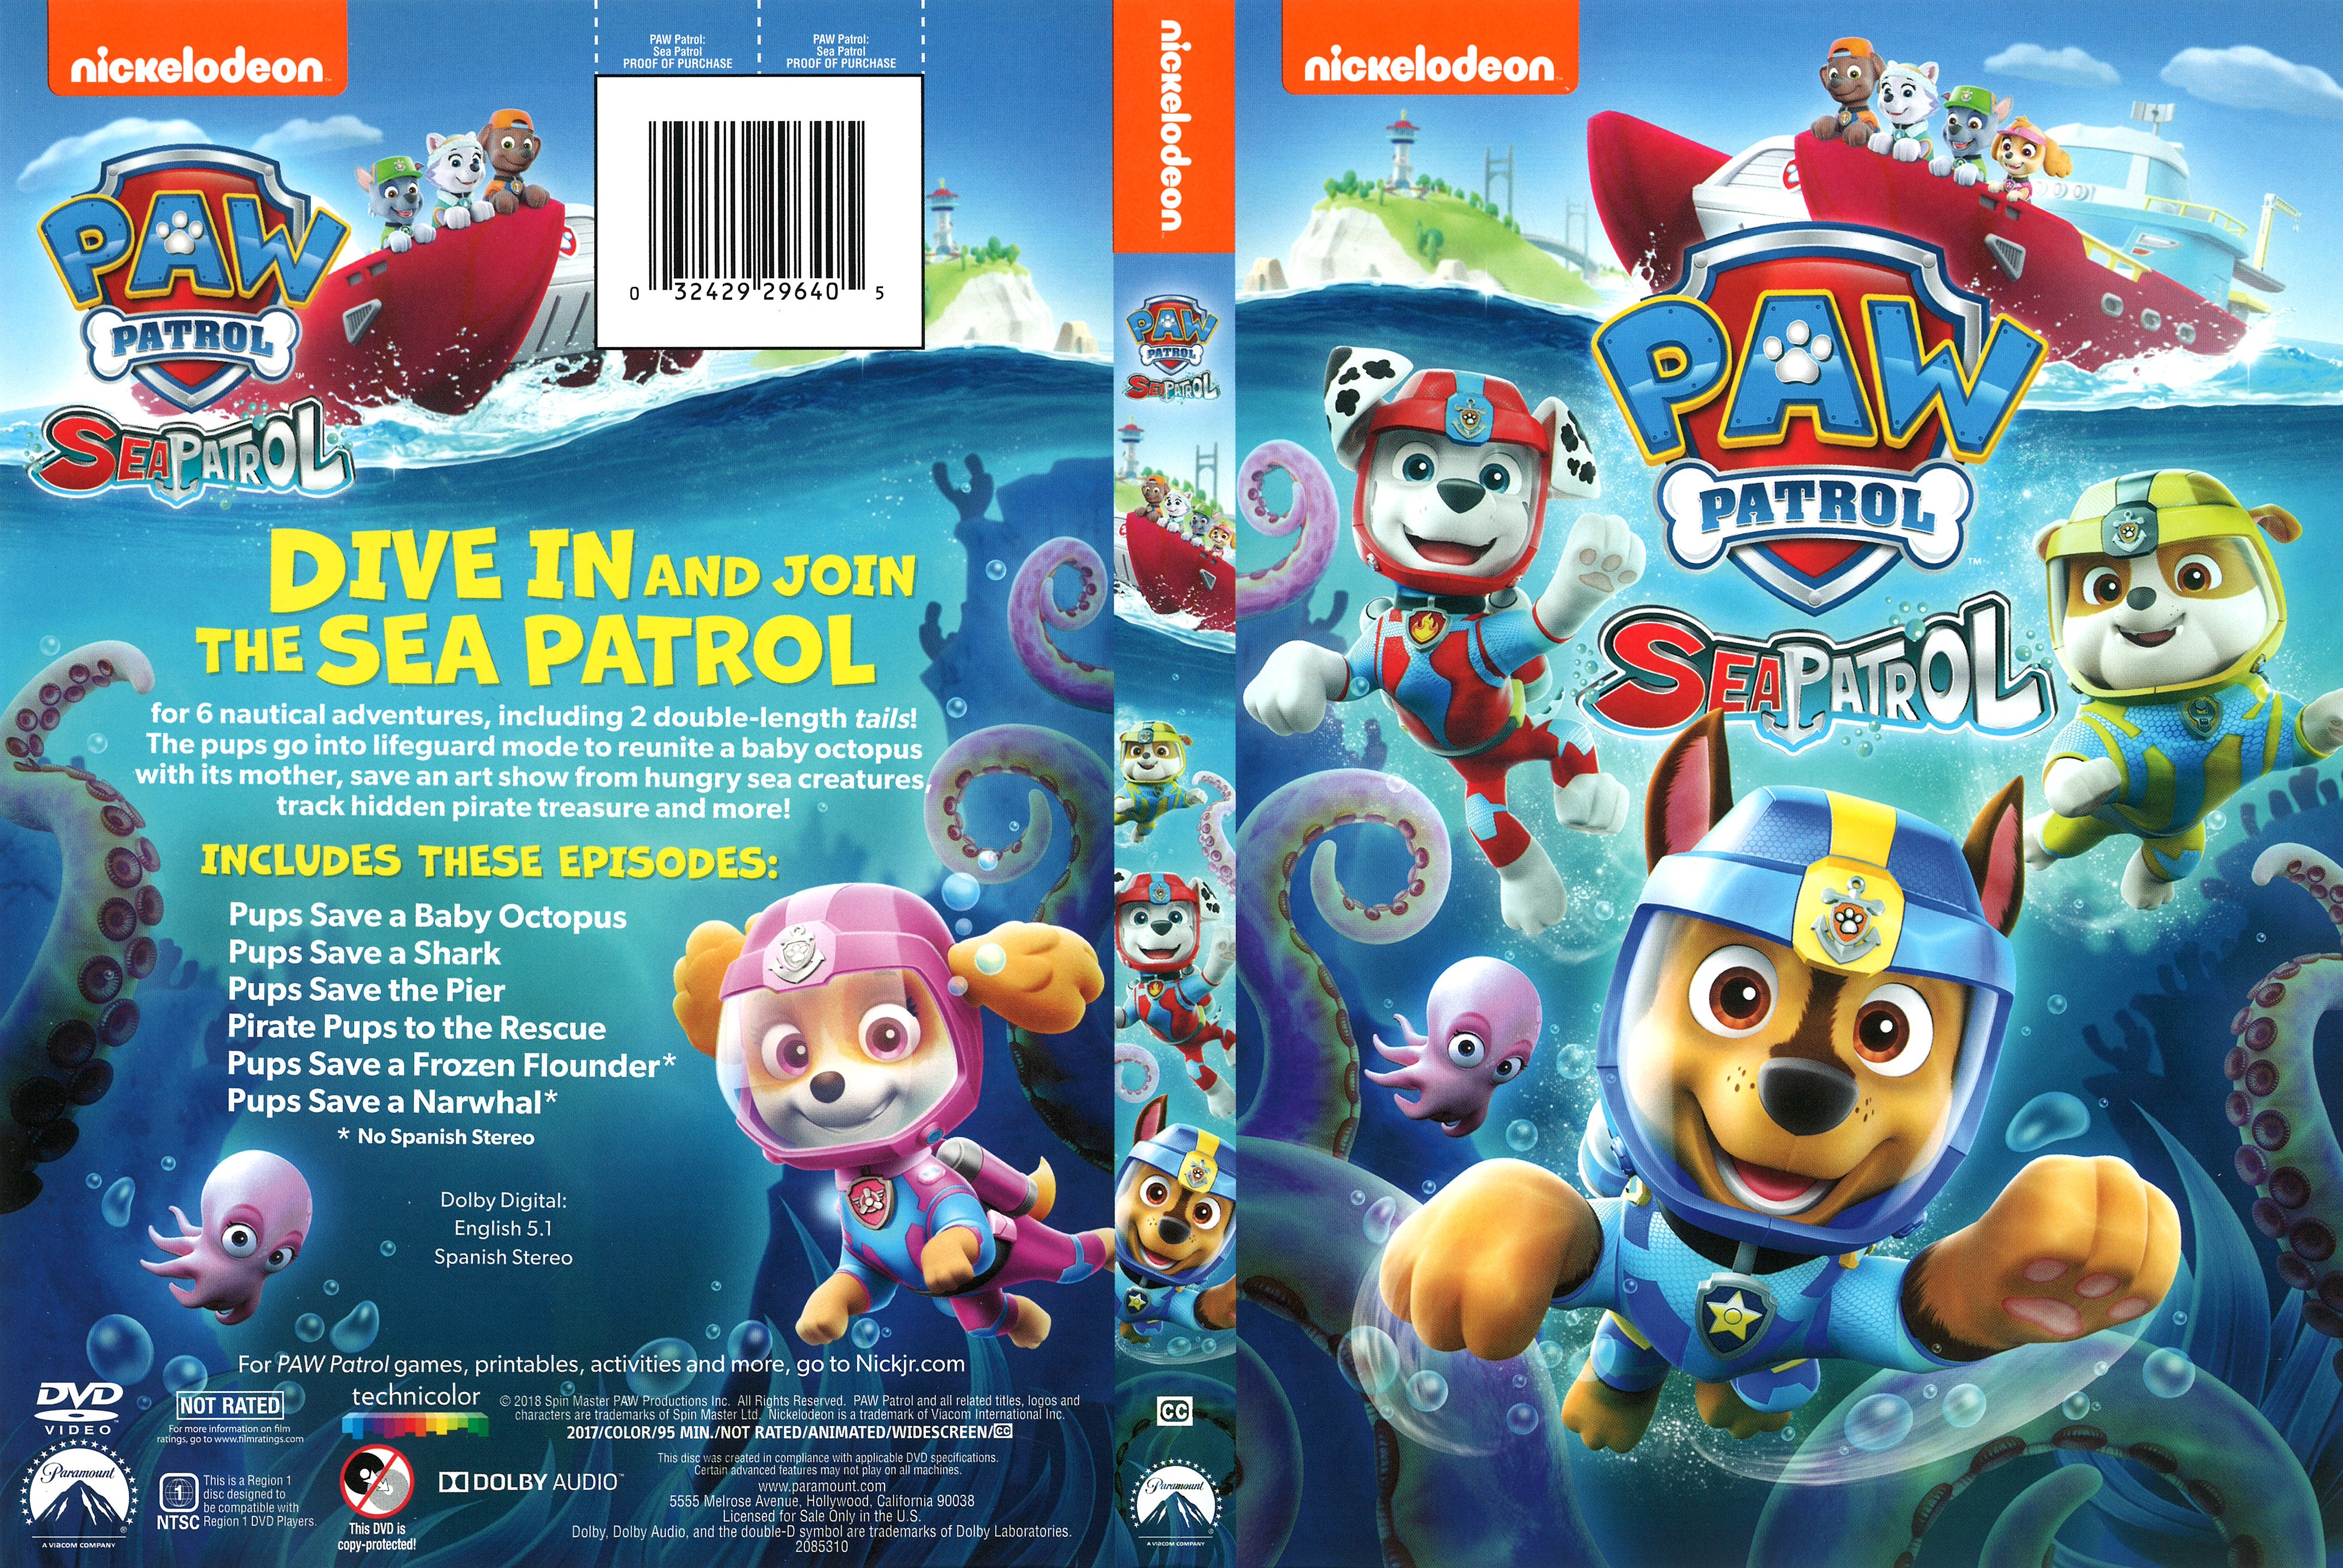 paw patrol sea patrol 2018  front  dvd covers  cover